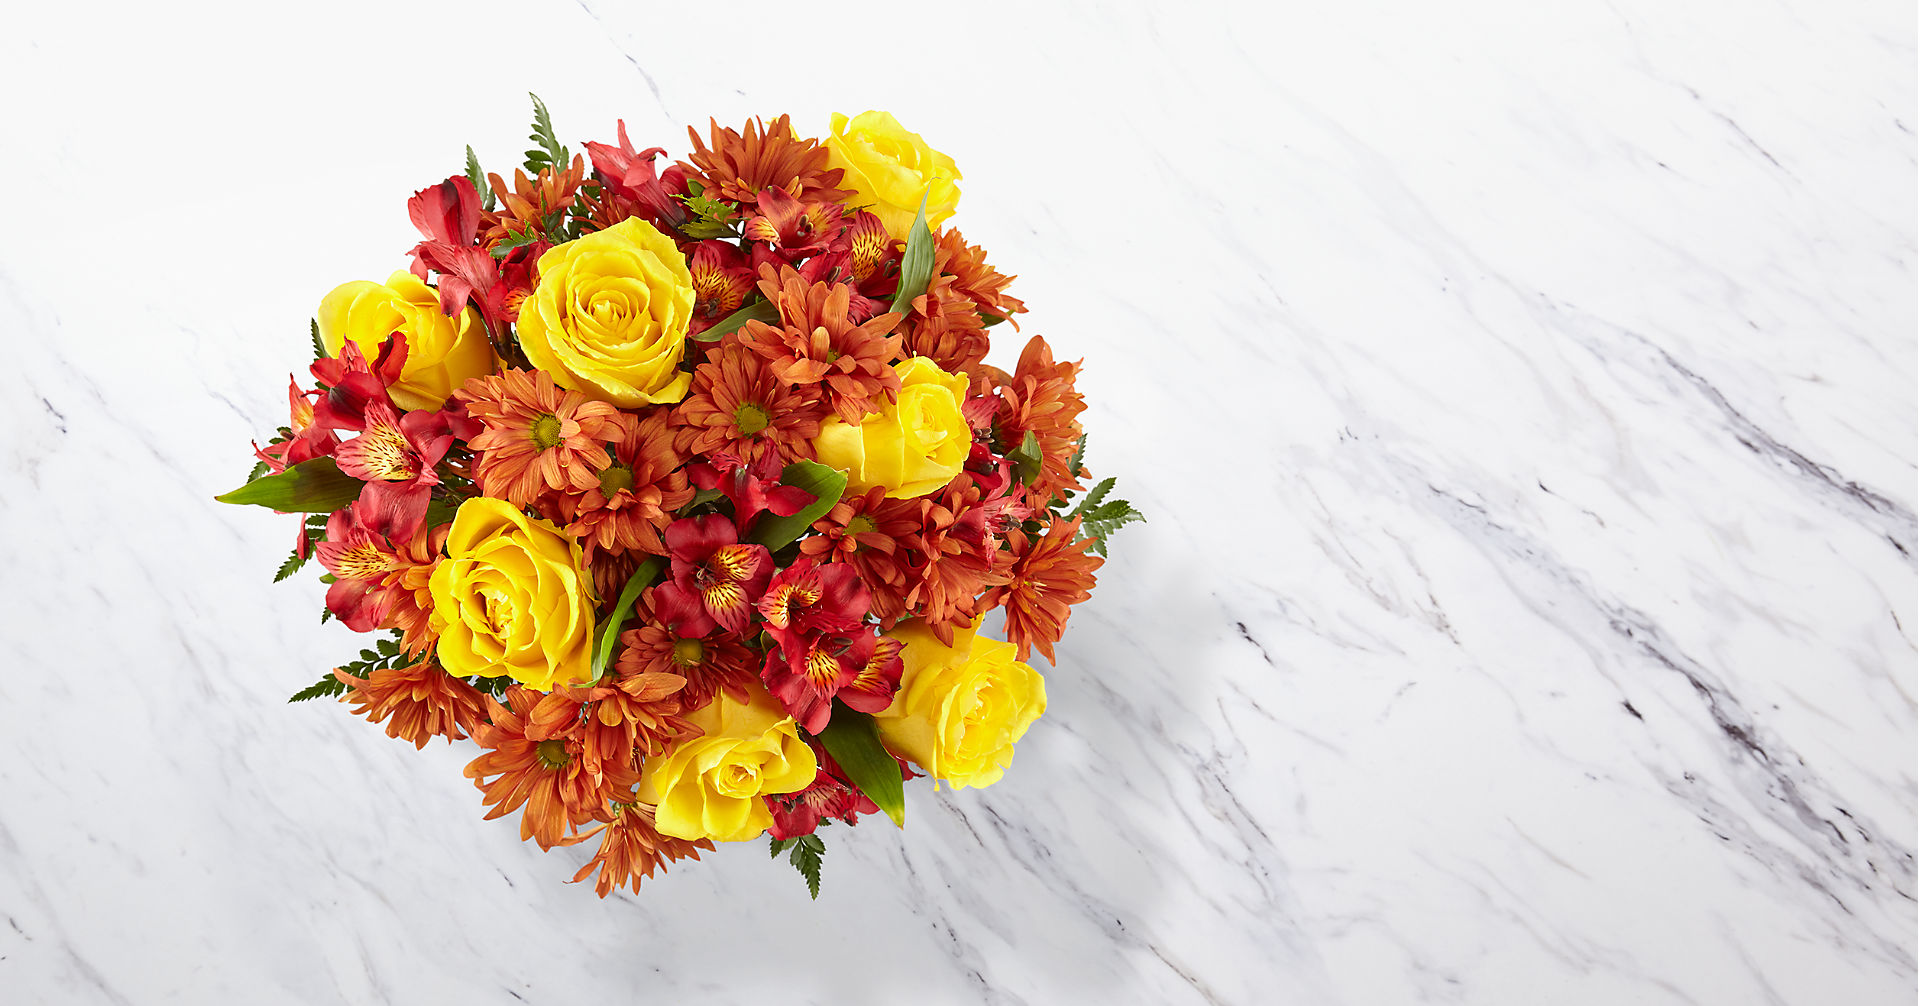 Golden Autumn™ Bouquet - Image 2 Of 3